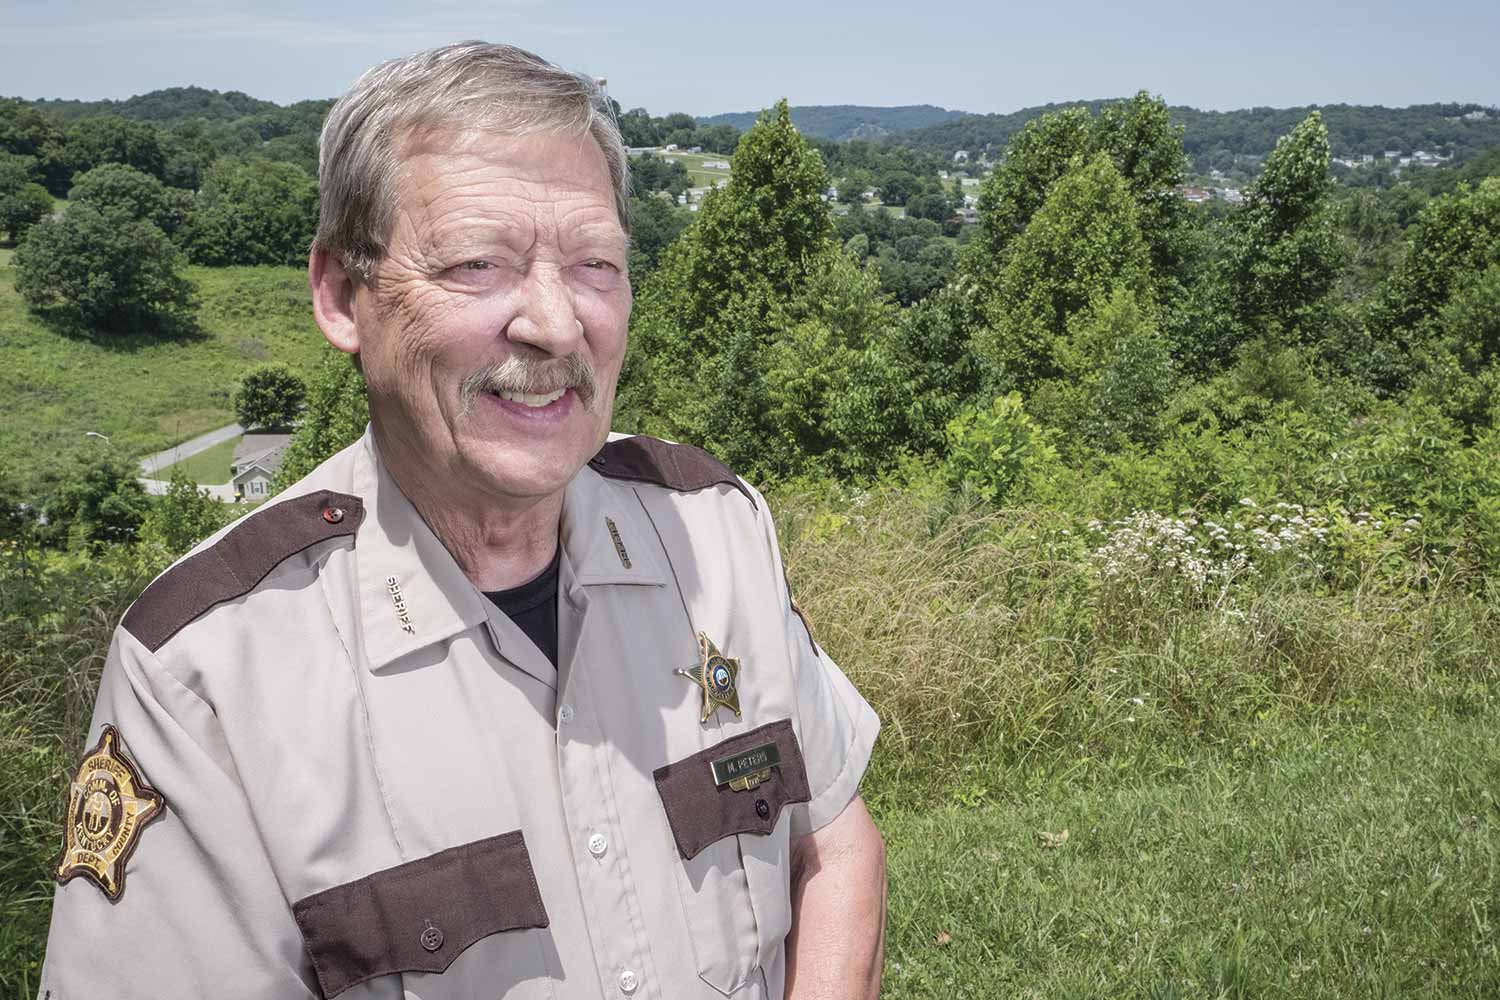 Rockcastle County Sheriff Mike Peters said his agency is using an on-call schedule between midnight and 8 a.m. as a way to make sure his county is covered on a 24/7 basis. (Photo by Jim Robertson)